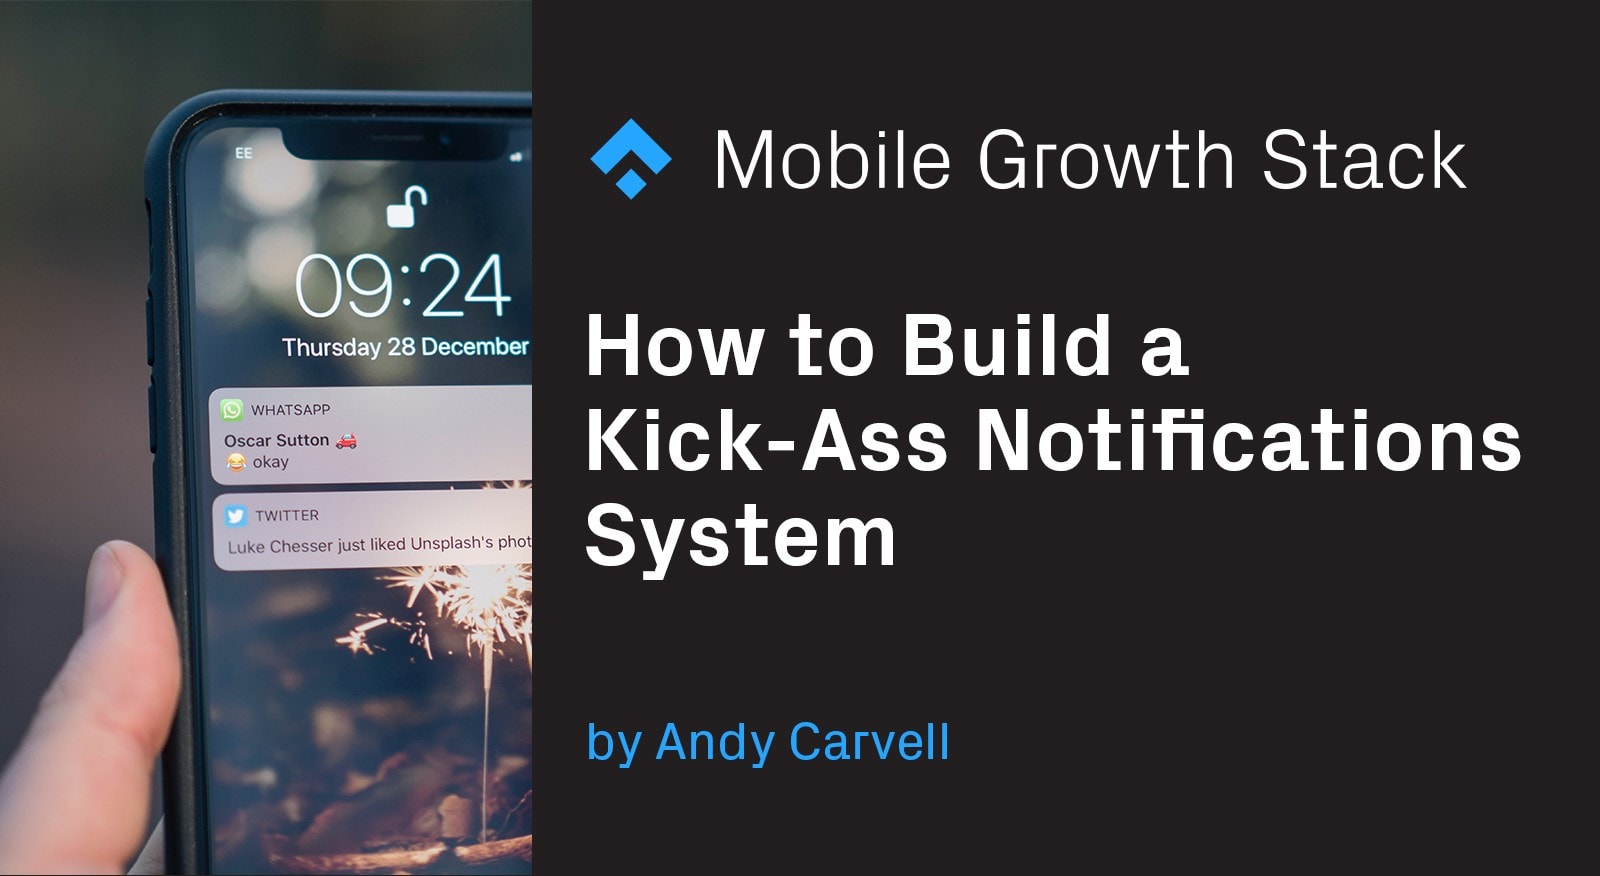 How to Build a Kick-Ass Notifications System